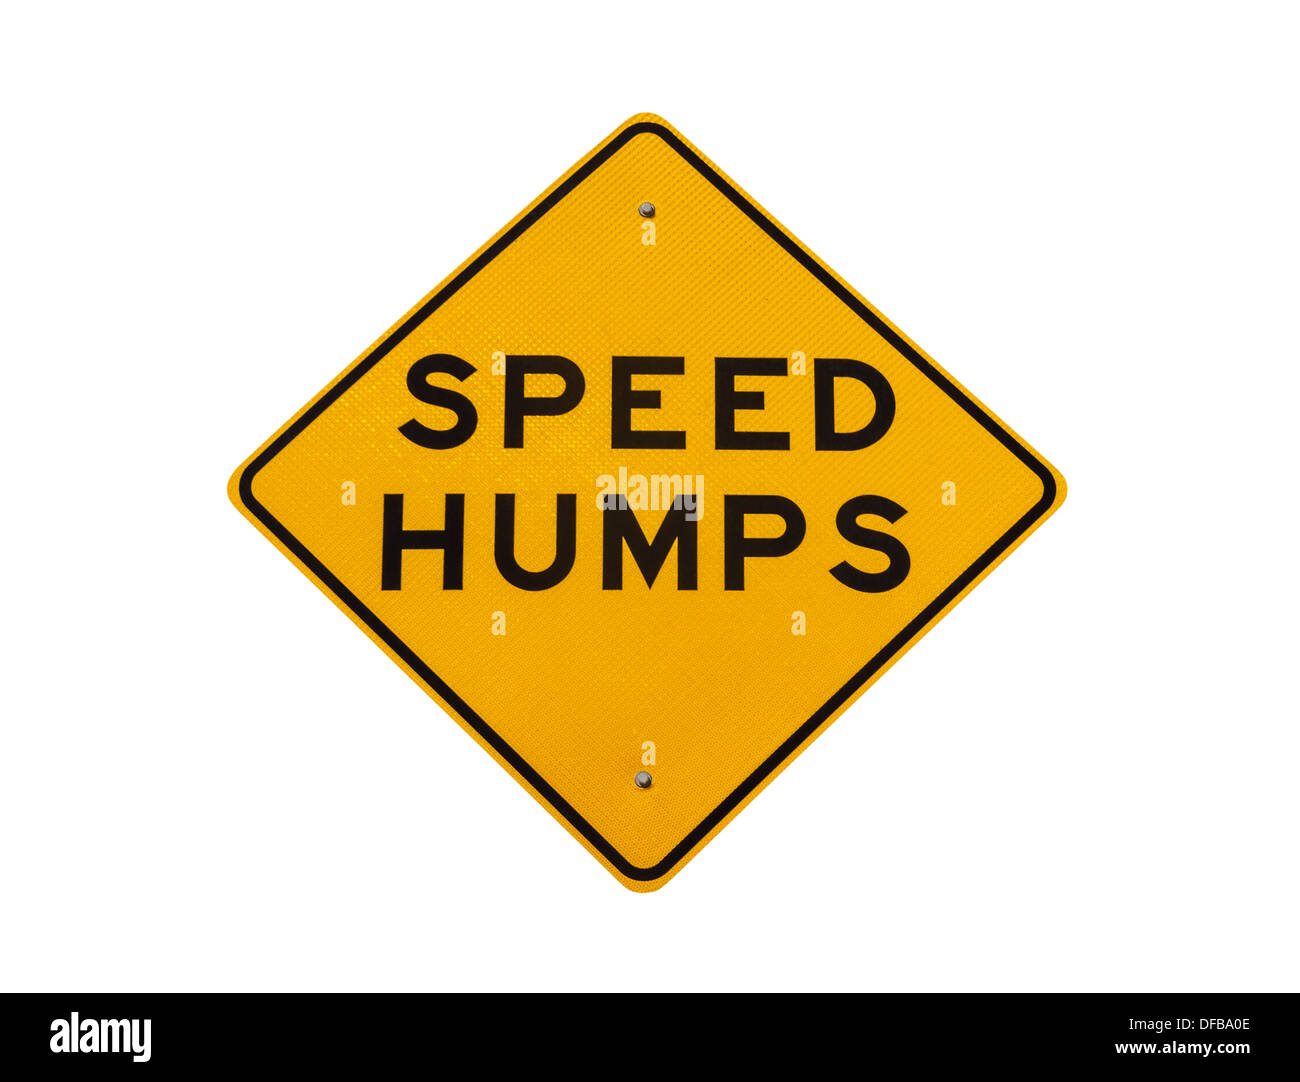 Speed humps road sign isolated with clipping path. - Stock Image